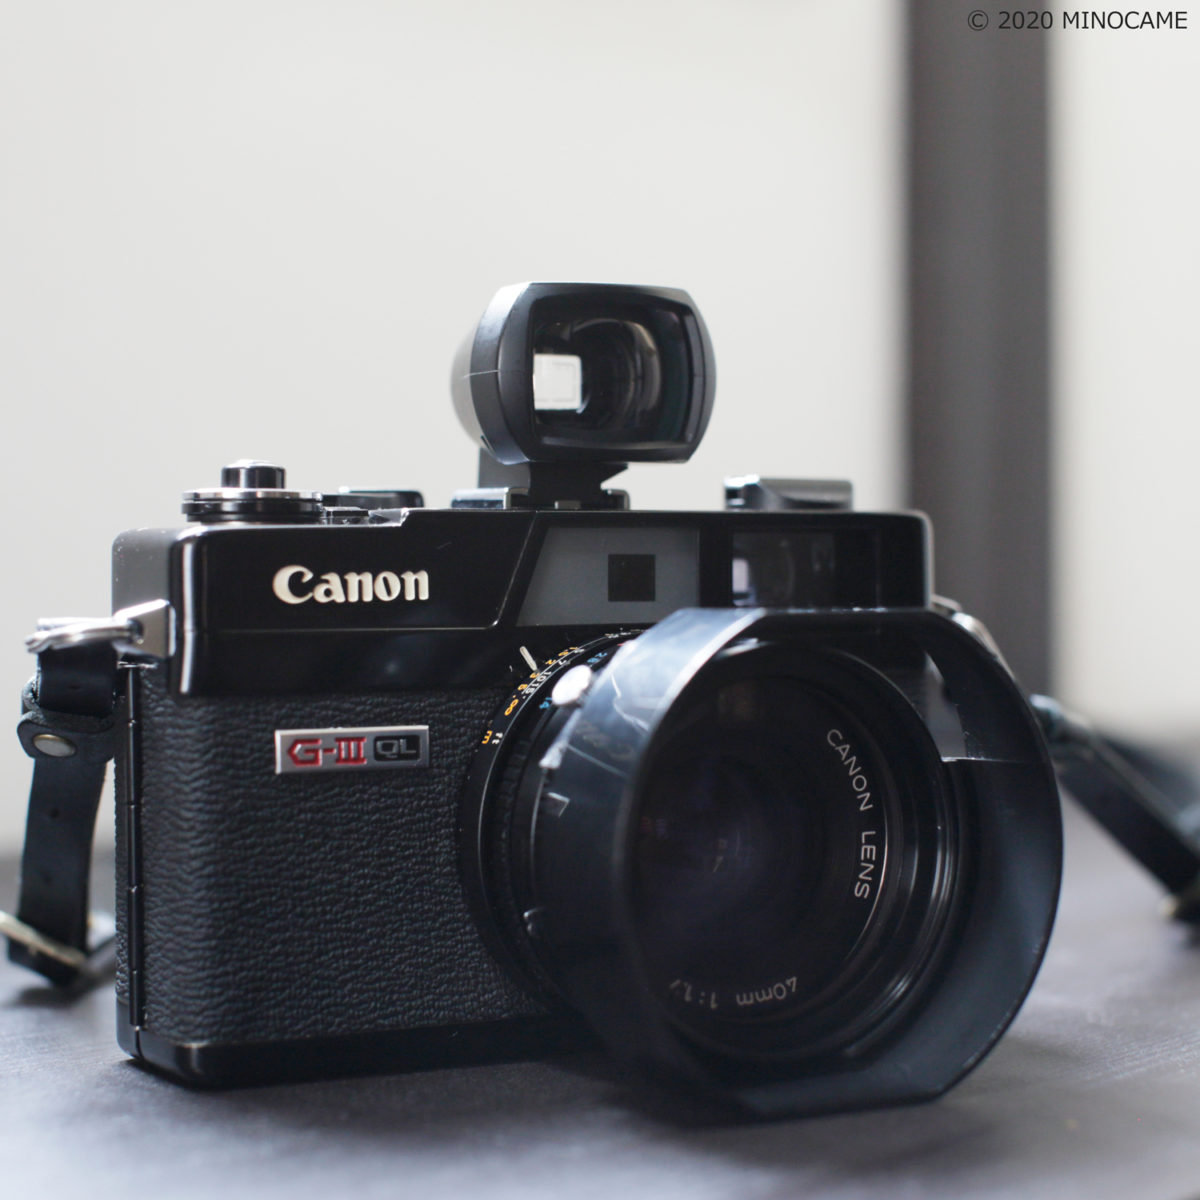 Canonet QL17 G-III with Hood5